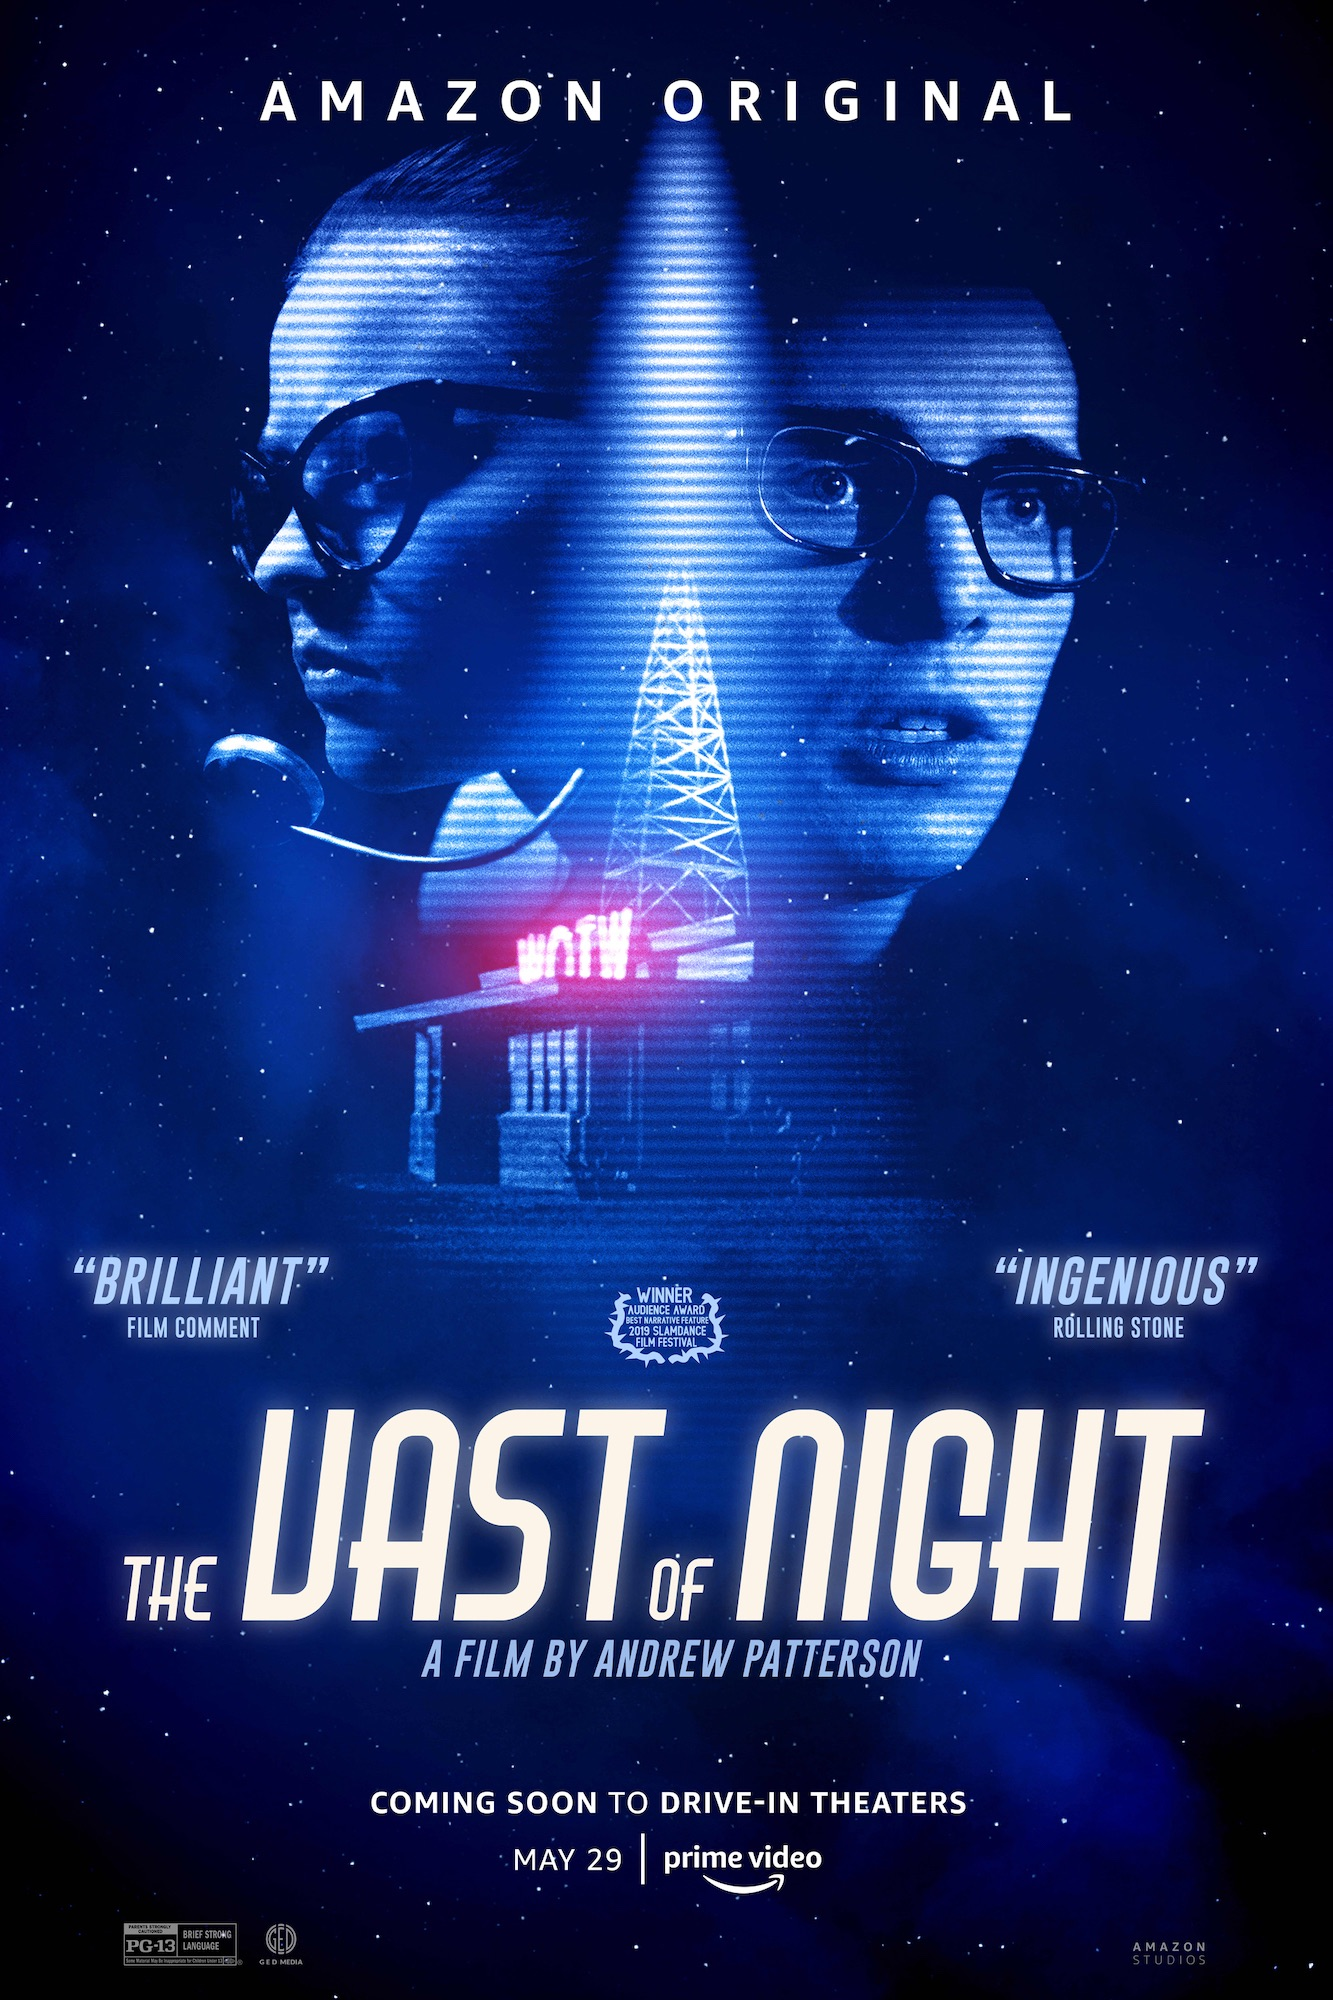 Poster for The Vast of the Night